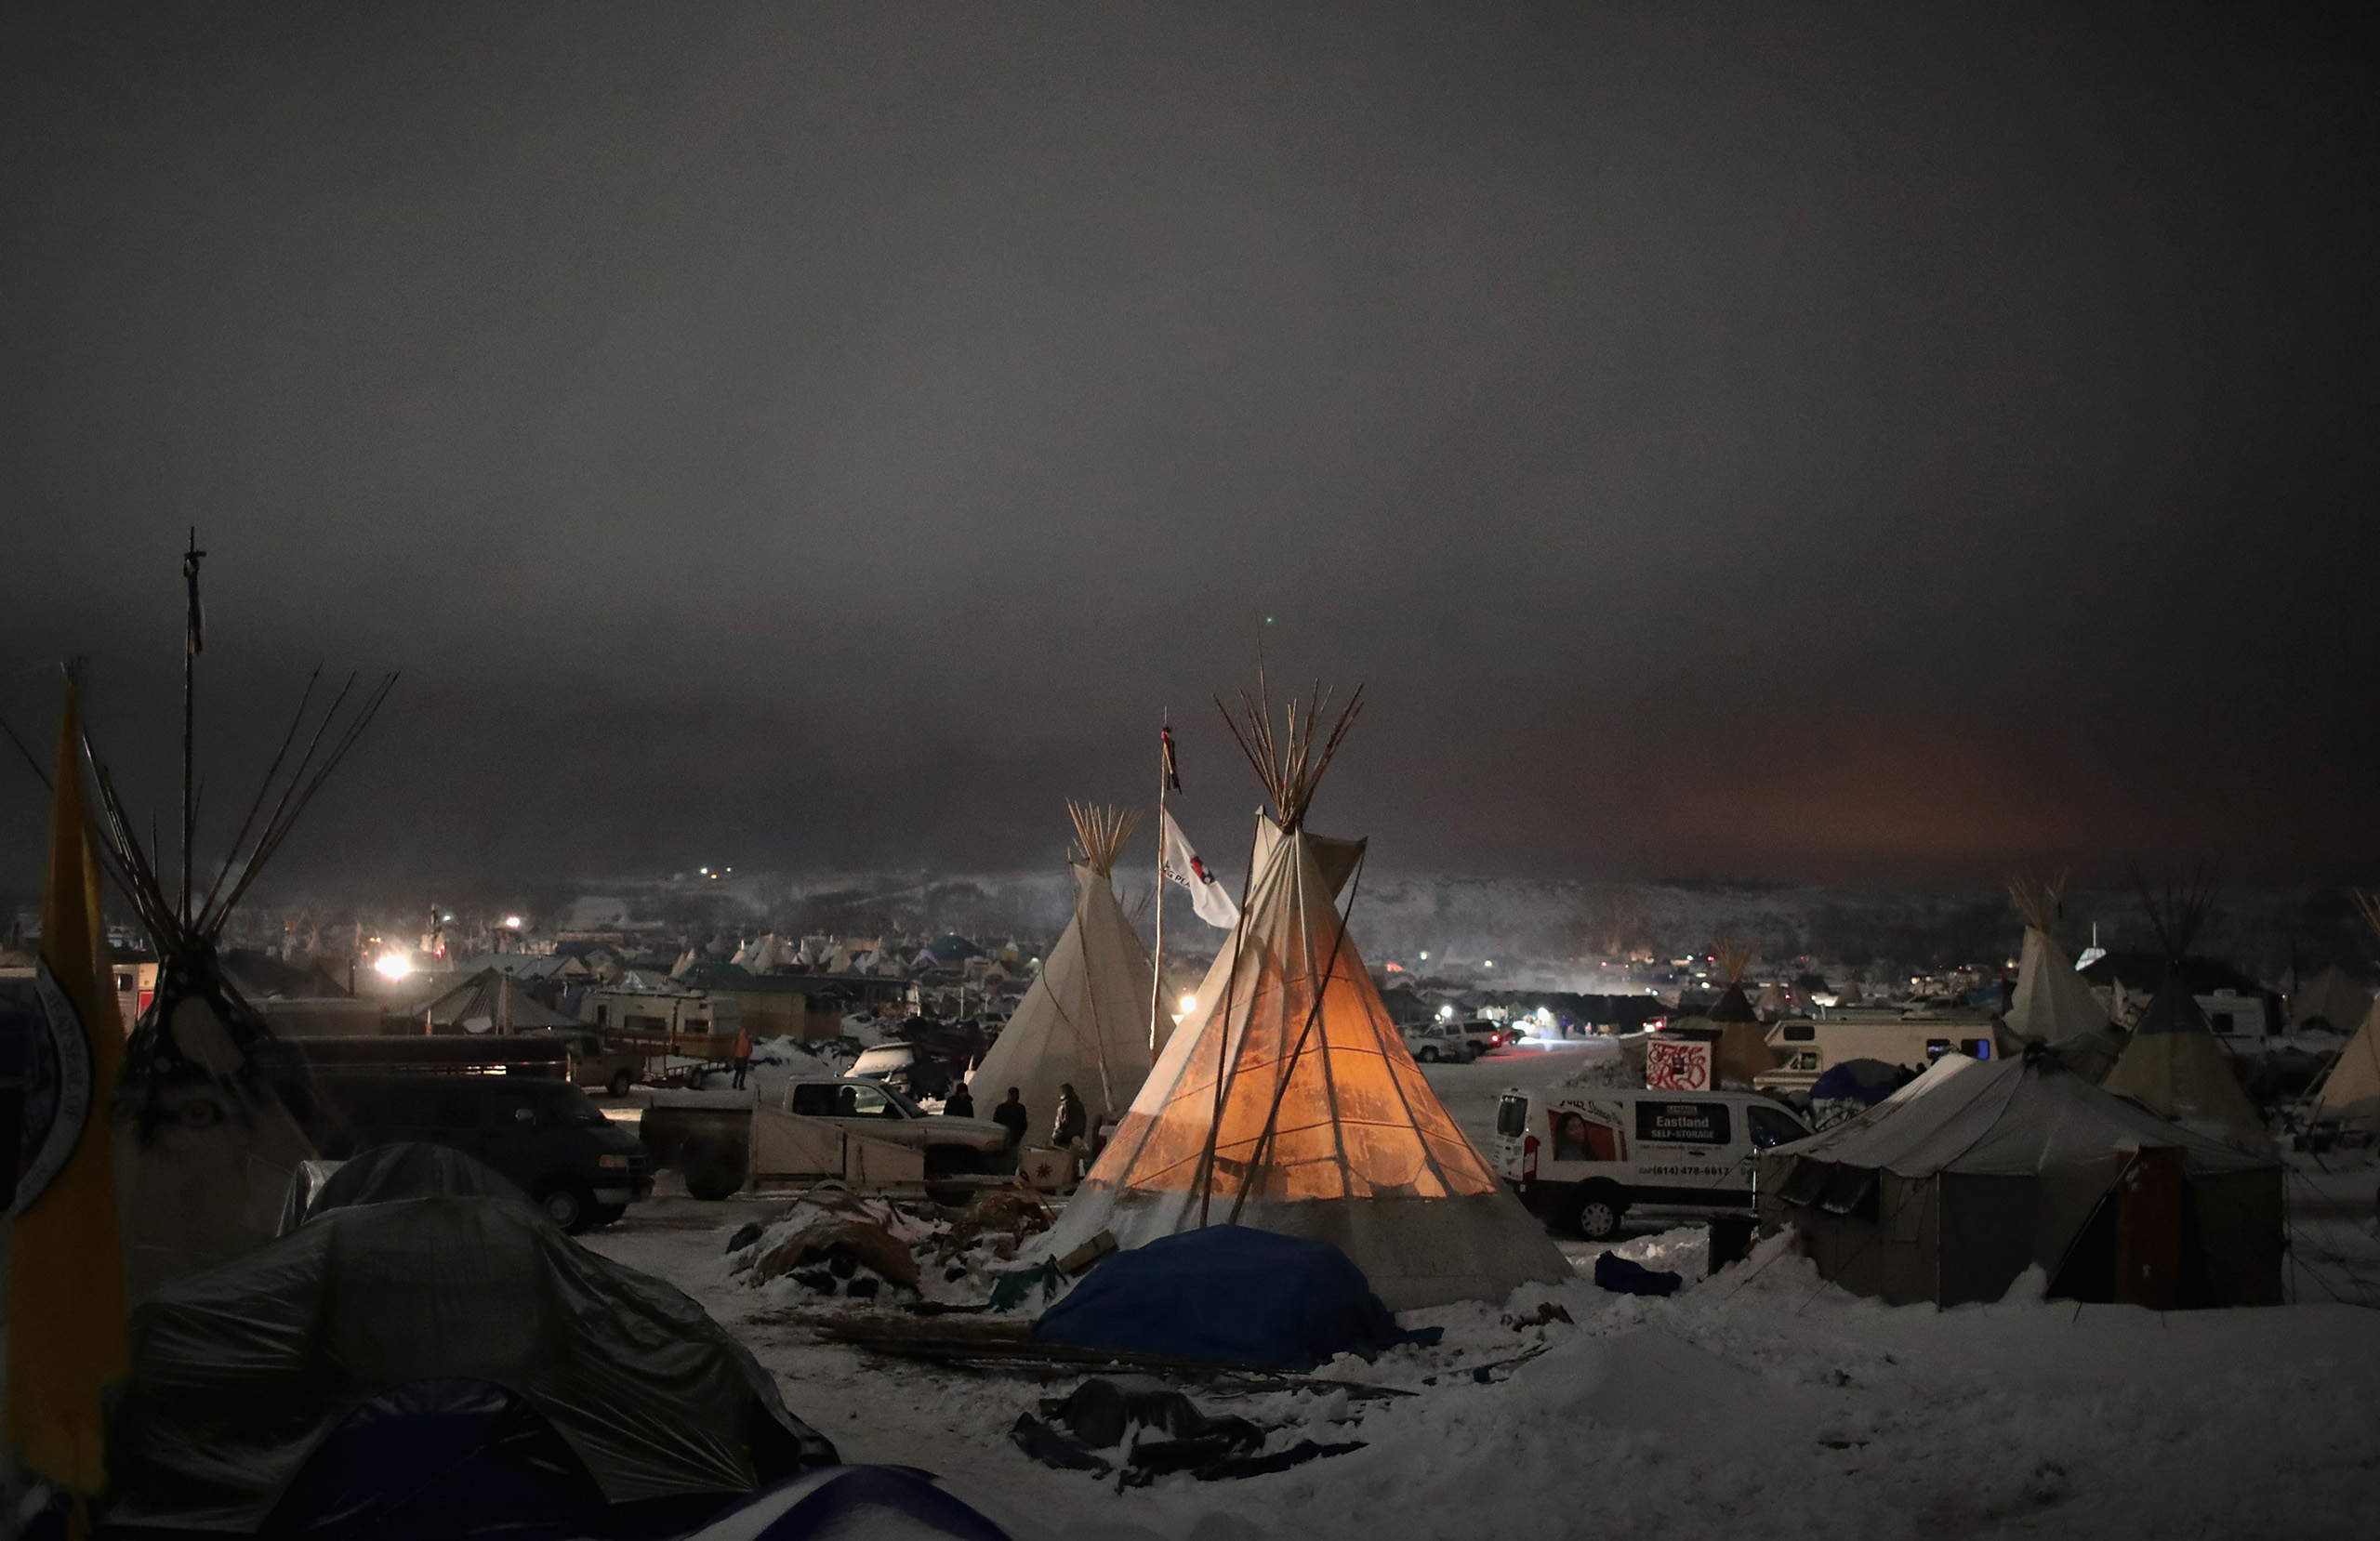 Night falls on Oceti Sakowin Camp on the edge of the Standing Rock Sioux Reservation outside Cannon Ball, North Dakota on Dec. 1, 2016